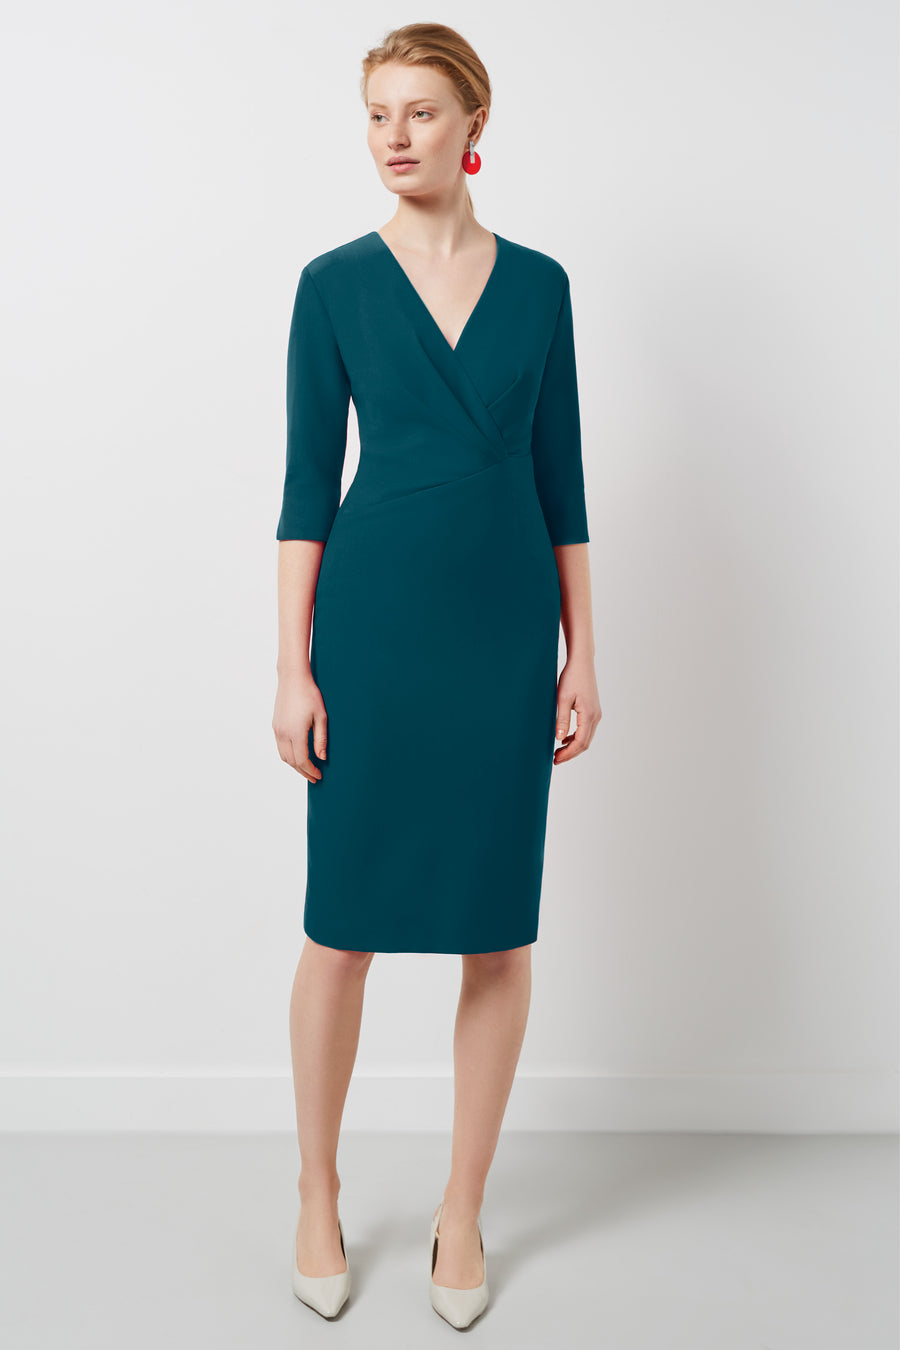 Wigmore Petrol Dress